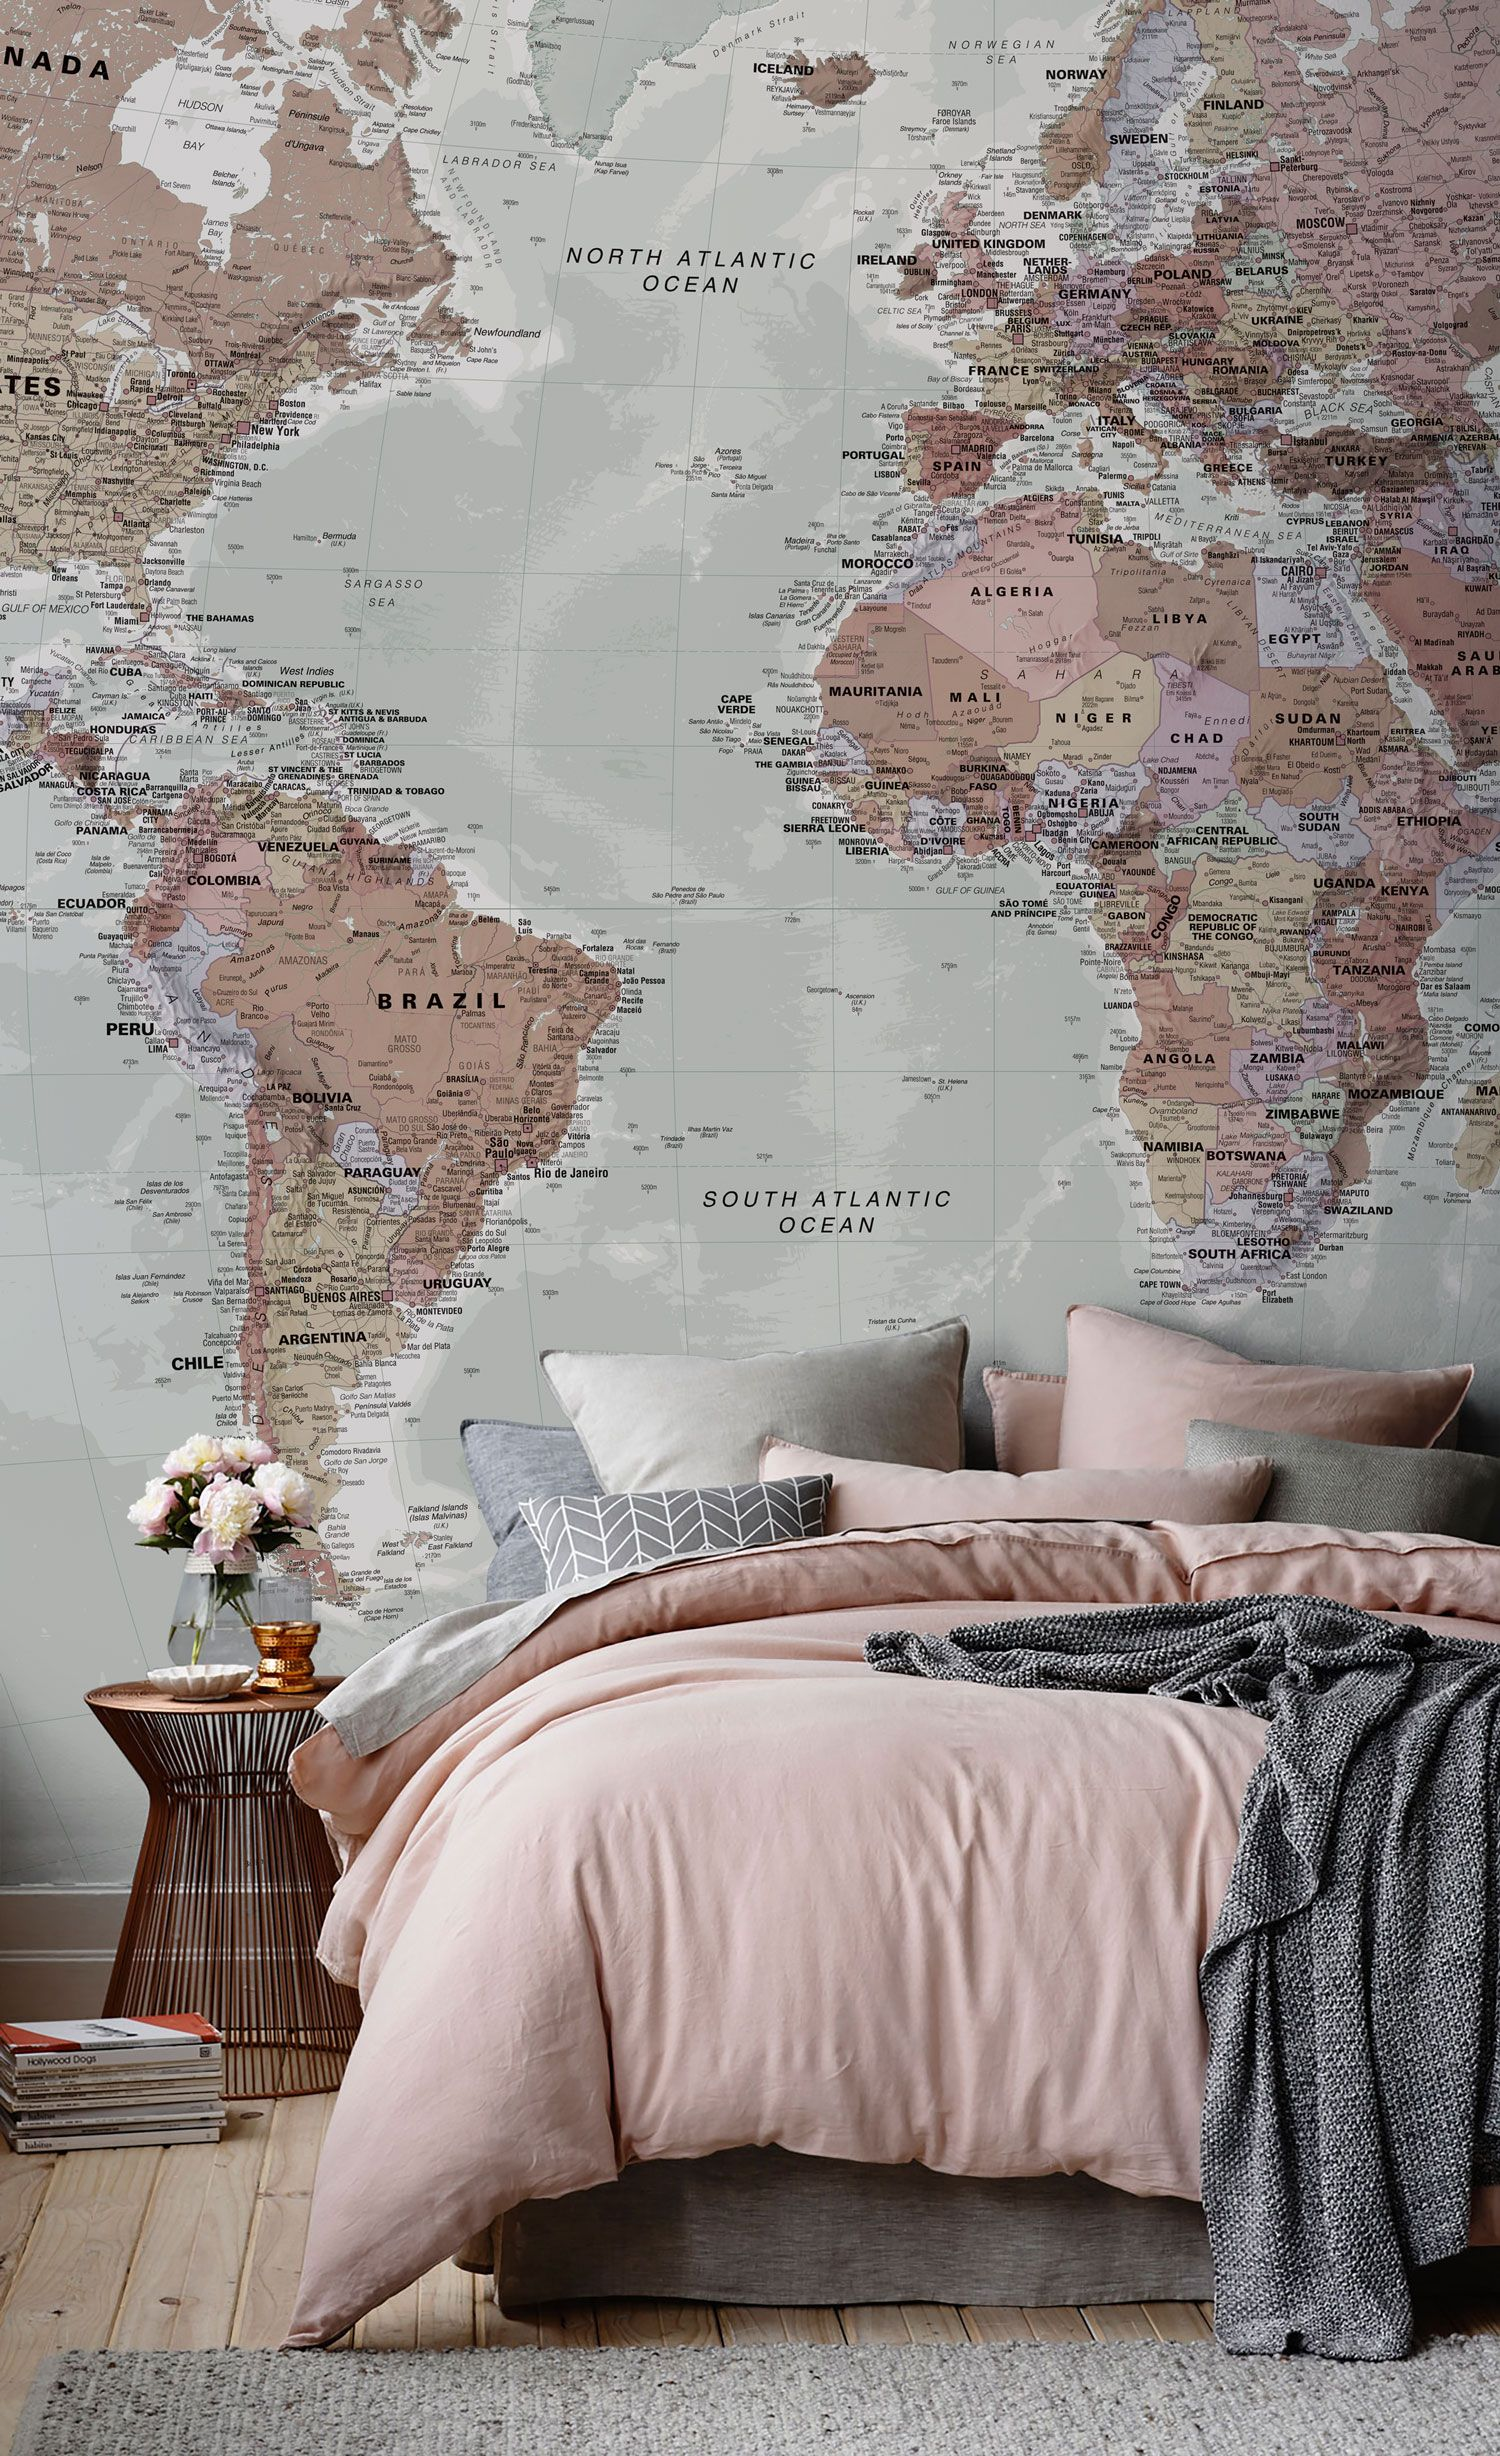 Classic World Map Mural Bedroom Decor World Map Wallpaper Room